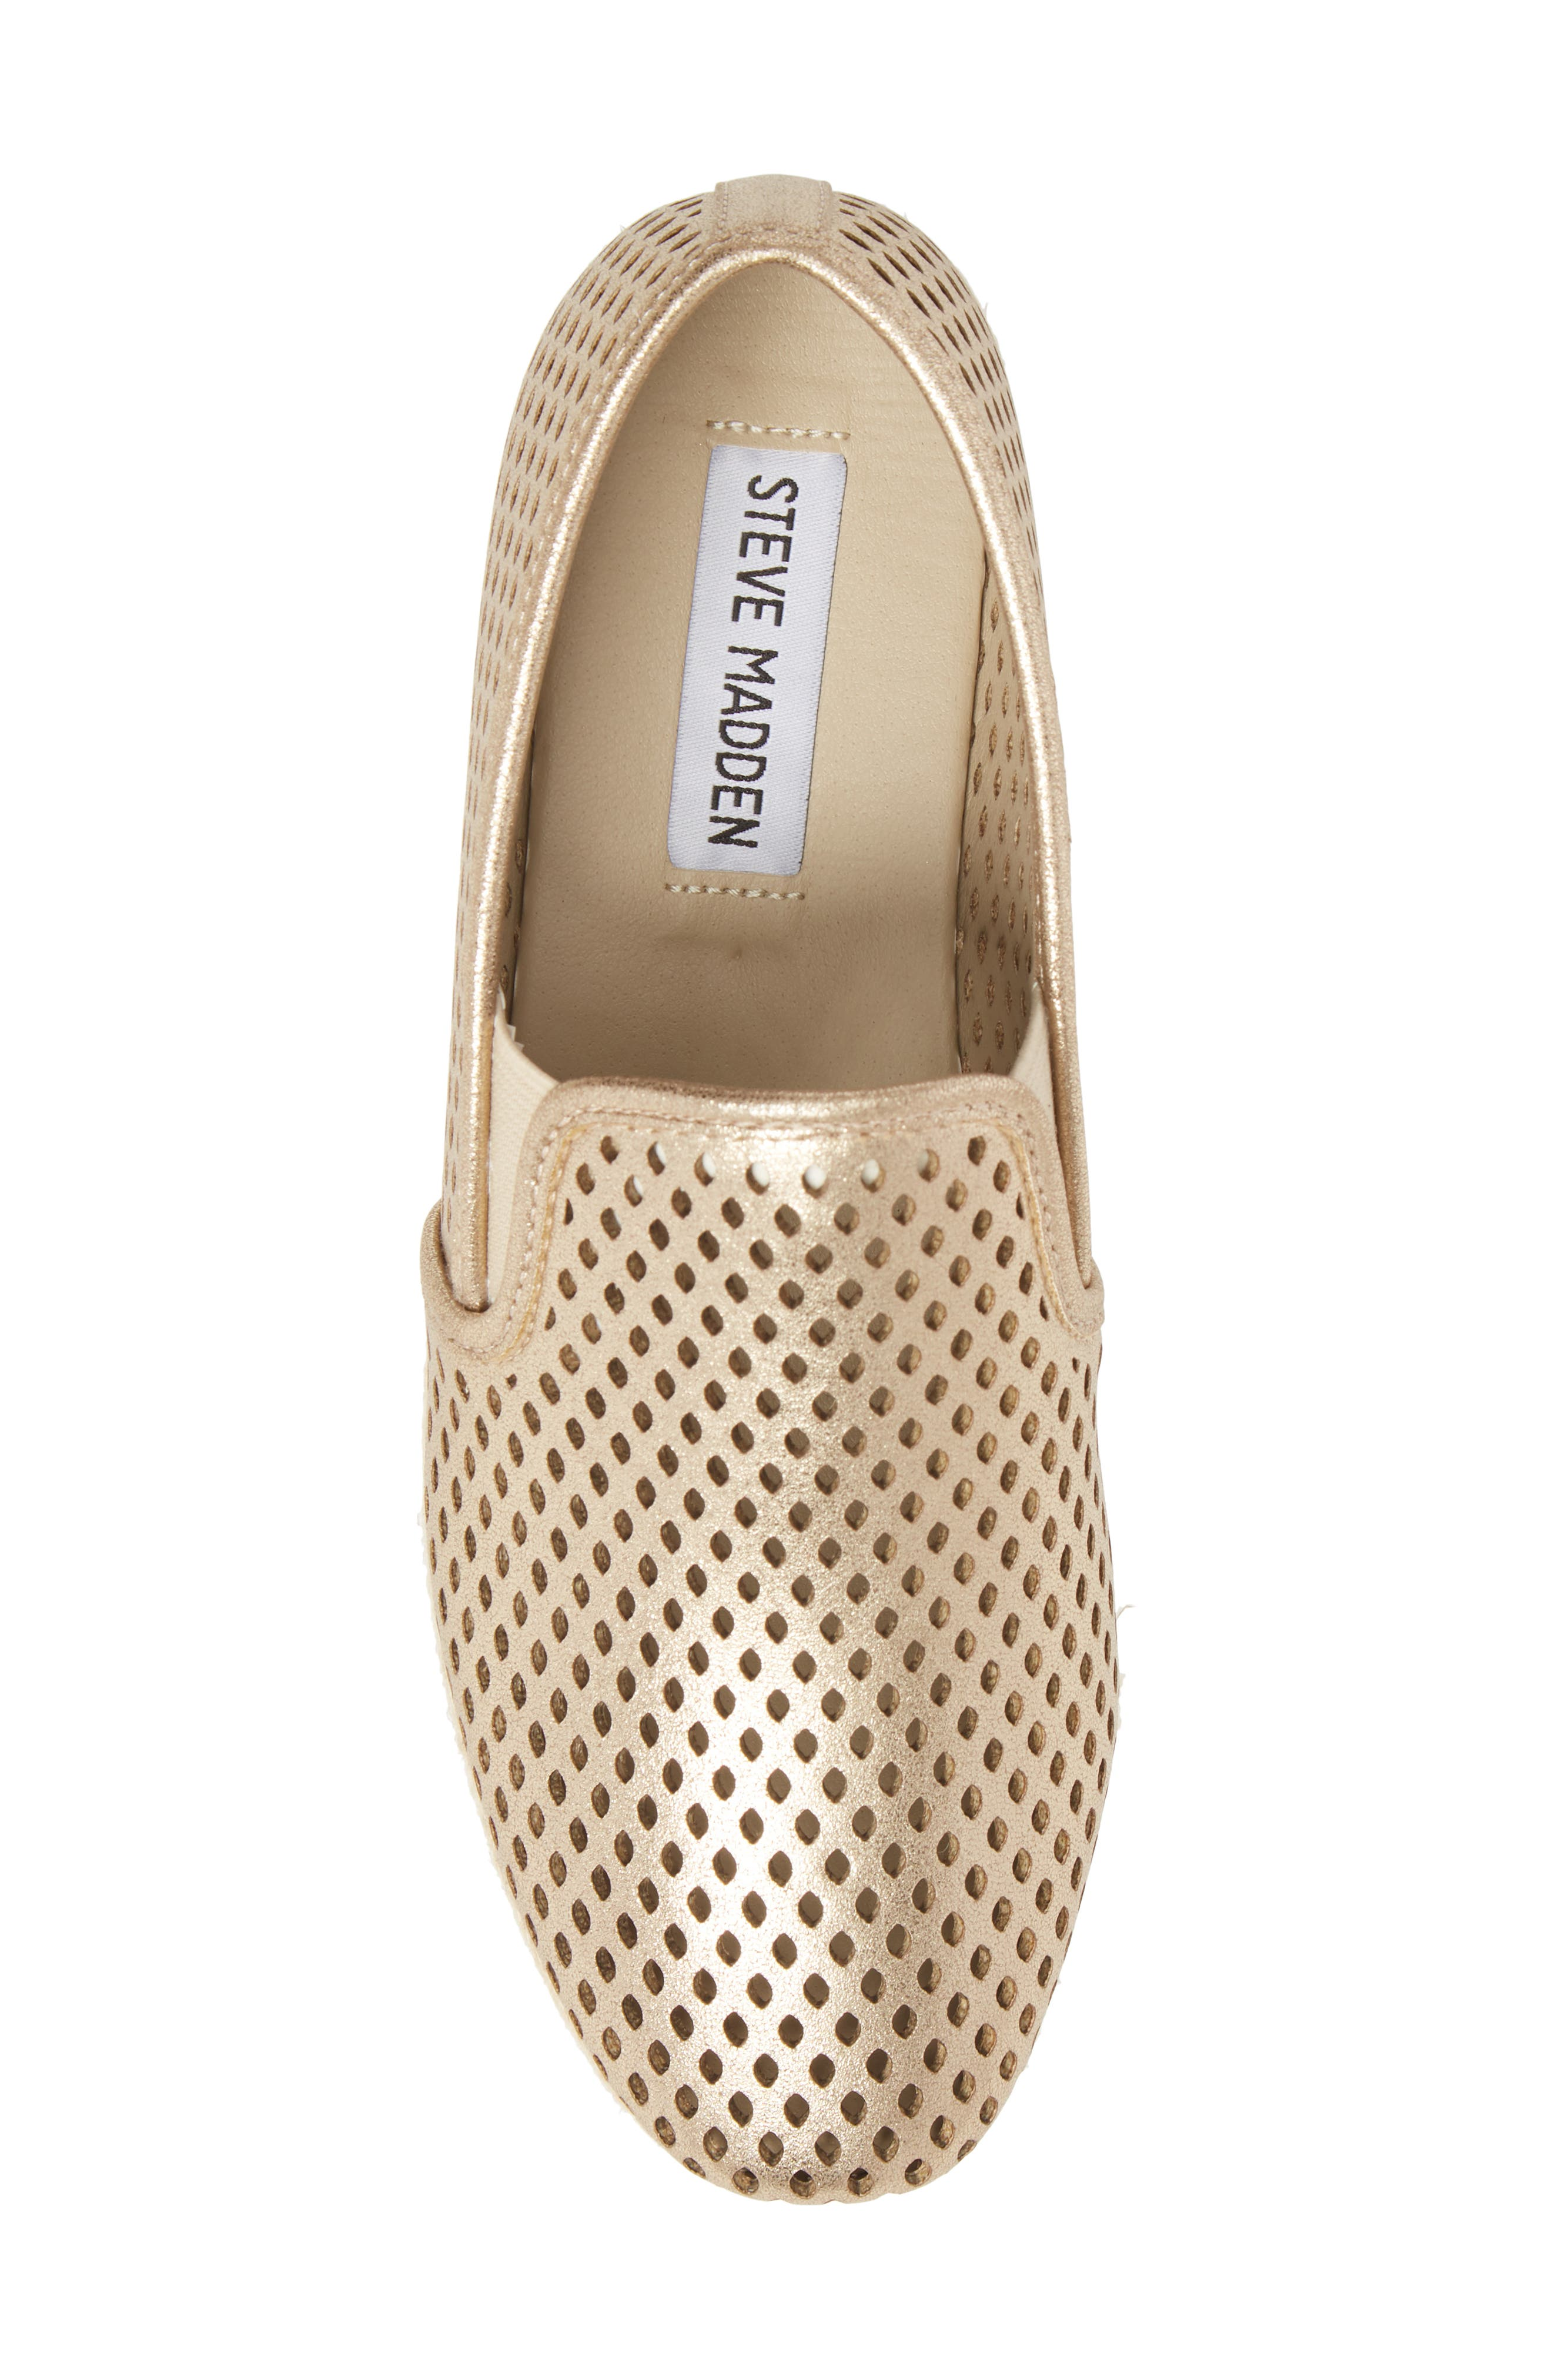 Kara Perforated Platform Loafer,                             Alternate thumbnail 5, color,                             Platinum